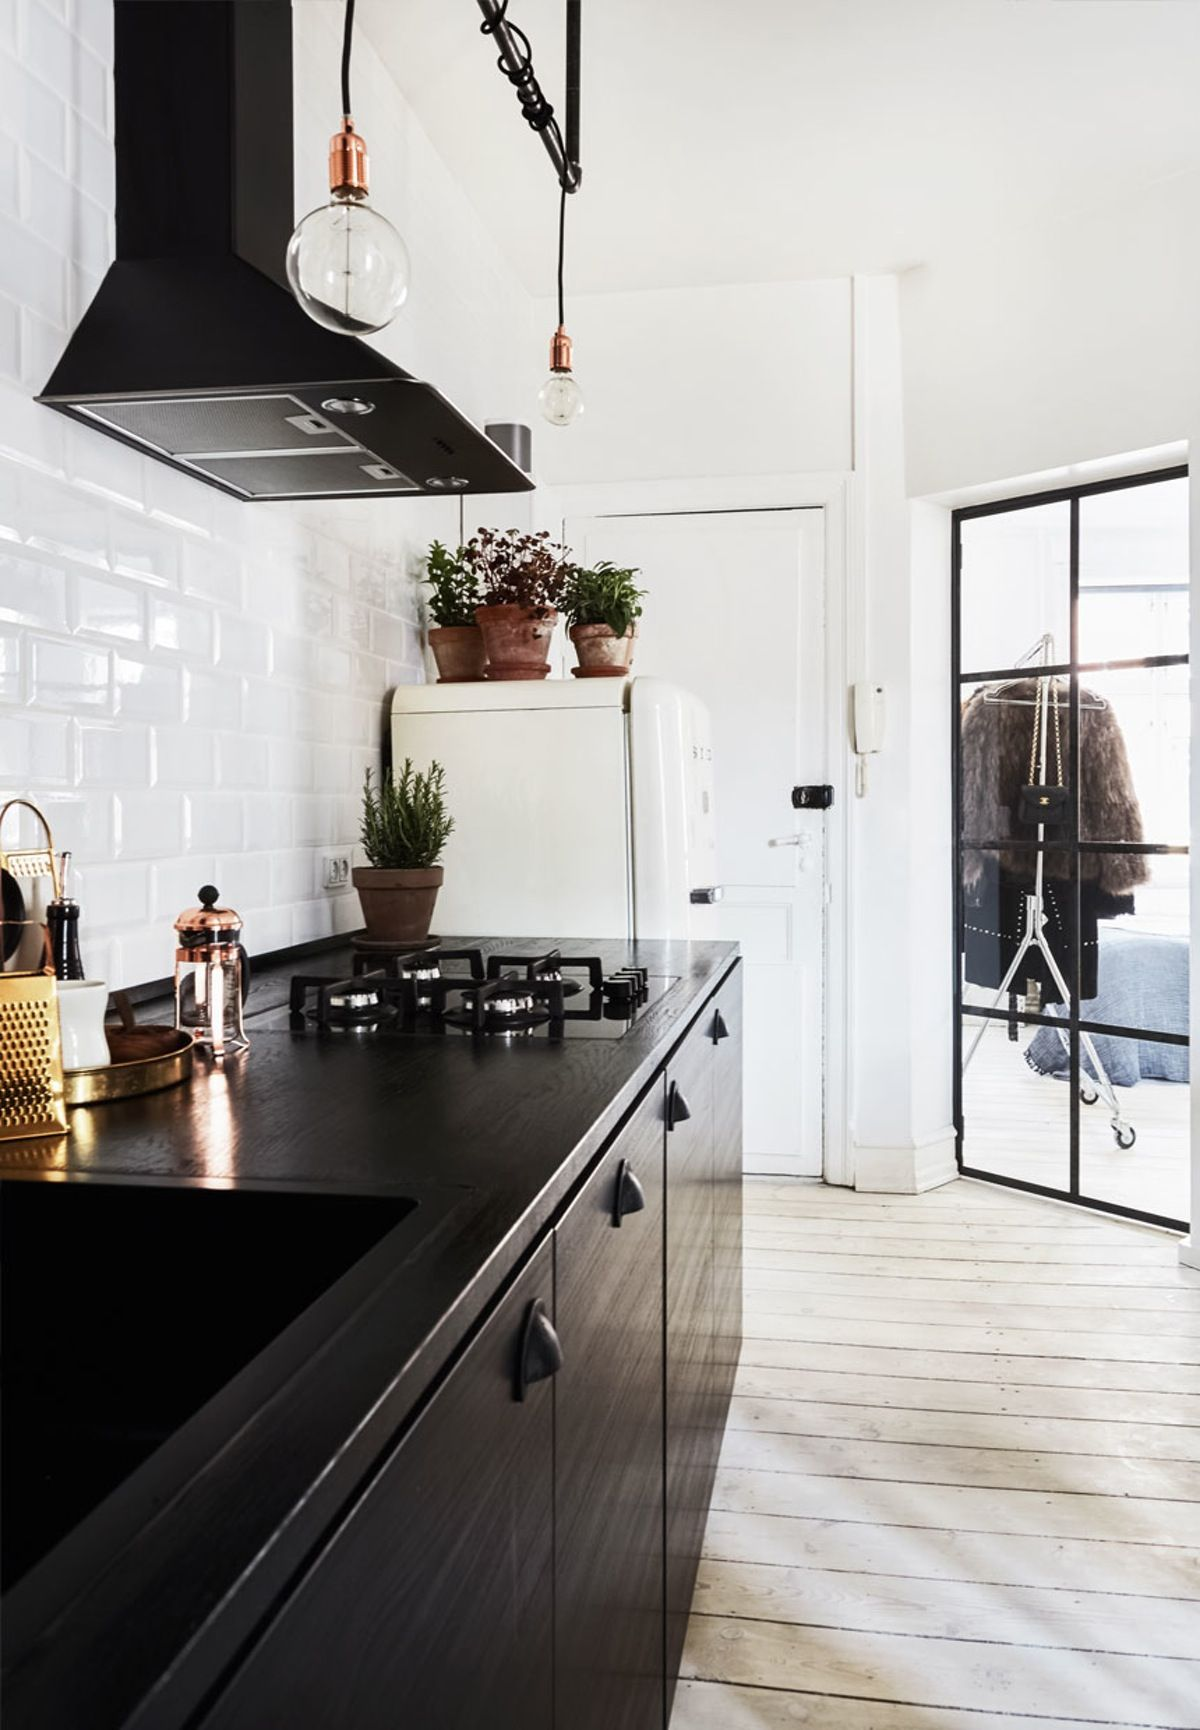 rustic and cool kitchen with black wooden cabinets and tabletop and white subway tiles on the wall - Subway Tile House Interior